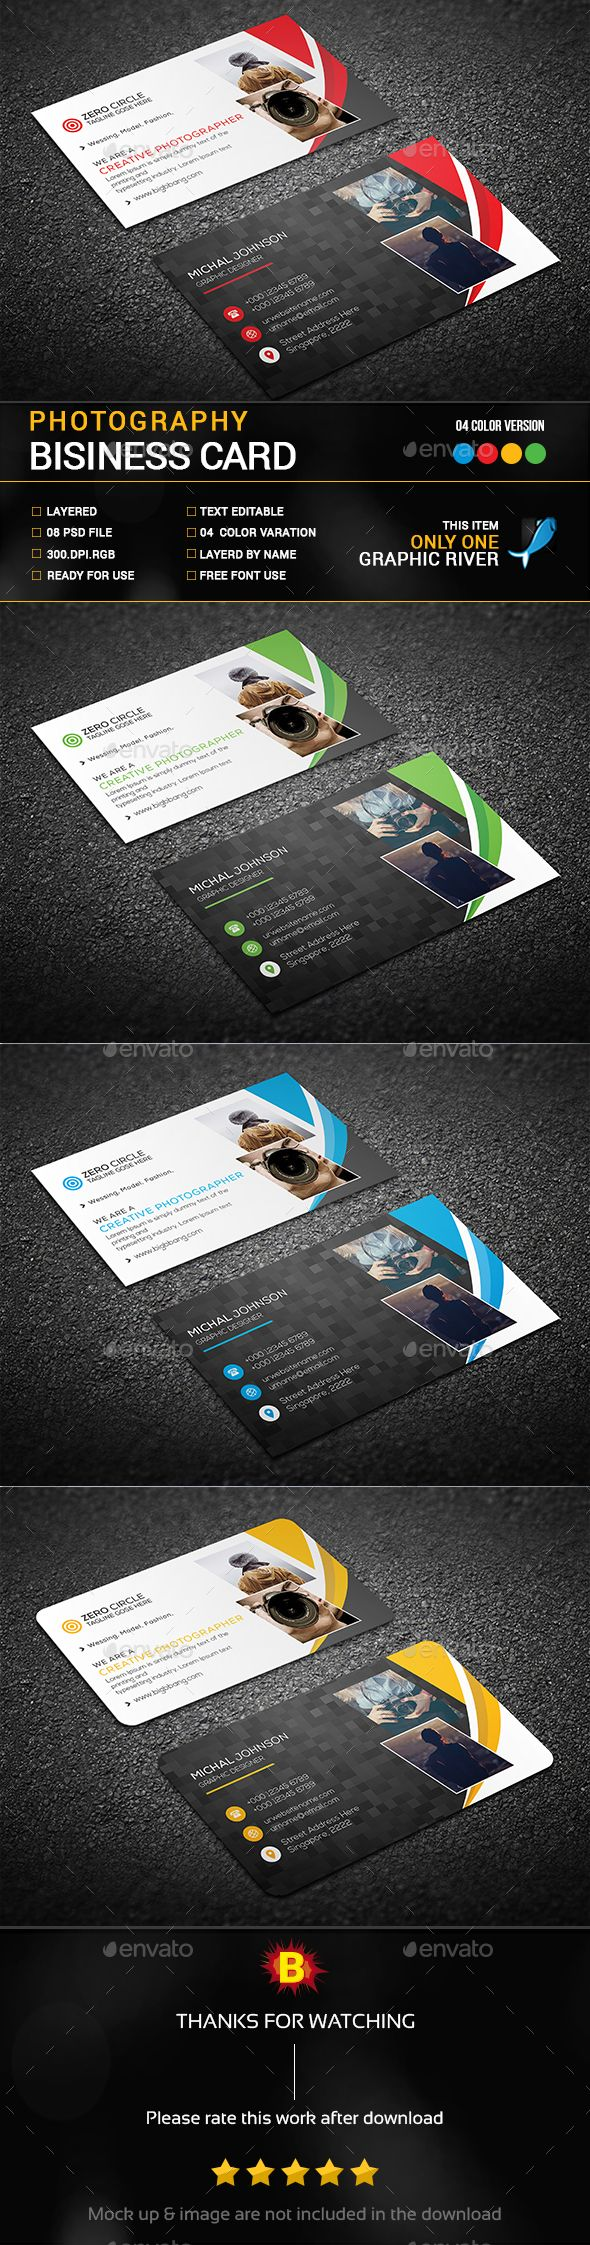 Photography Business Card Template PSD. Download here: https ...